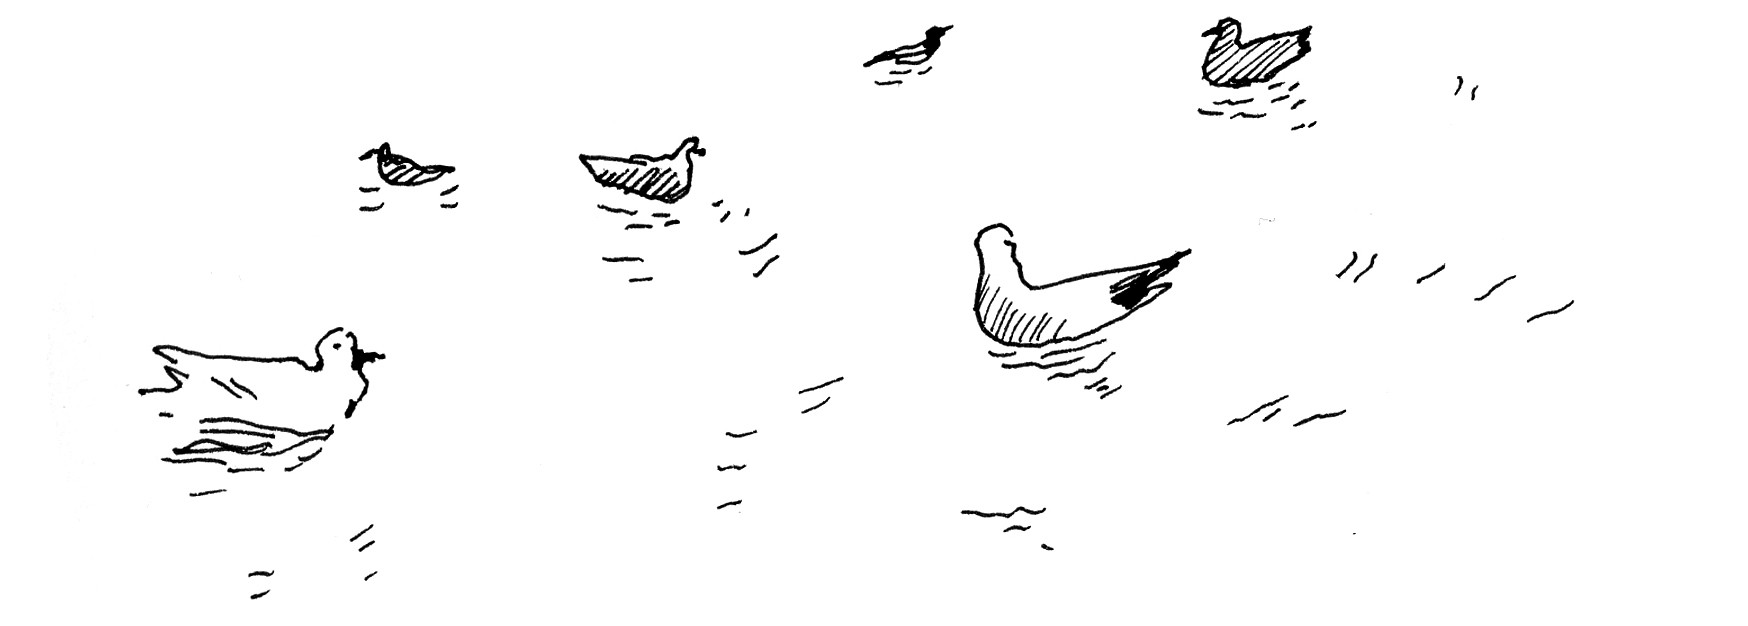 A drawing of a group of seagulls bobbing on the water